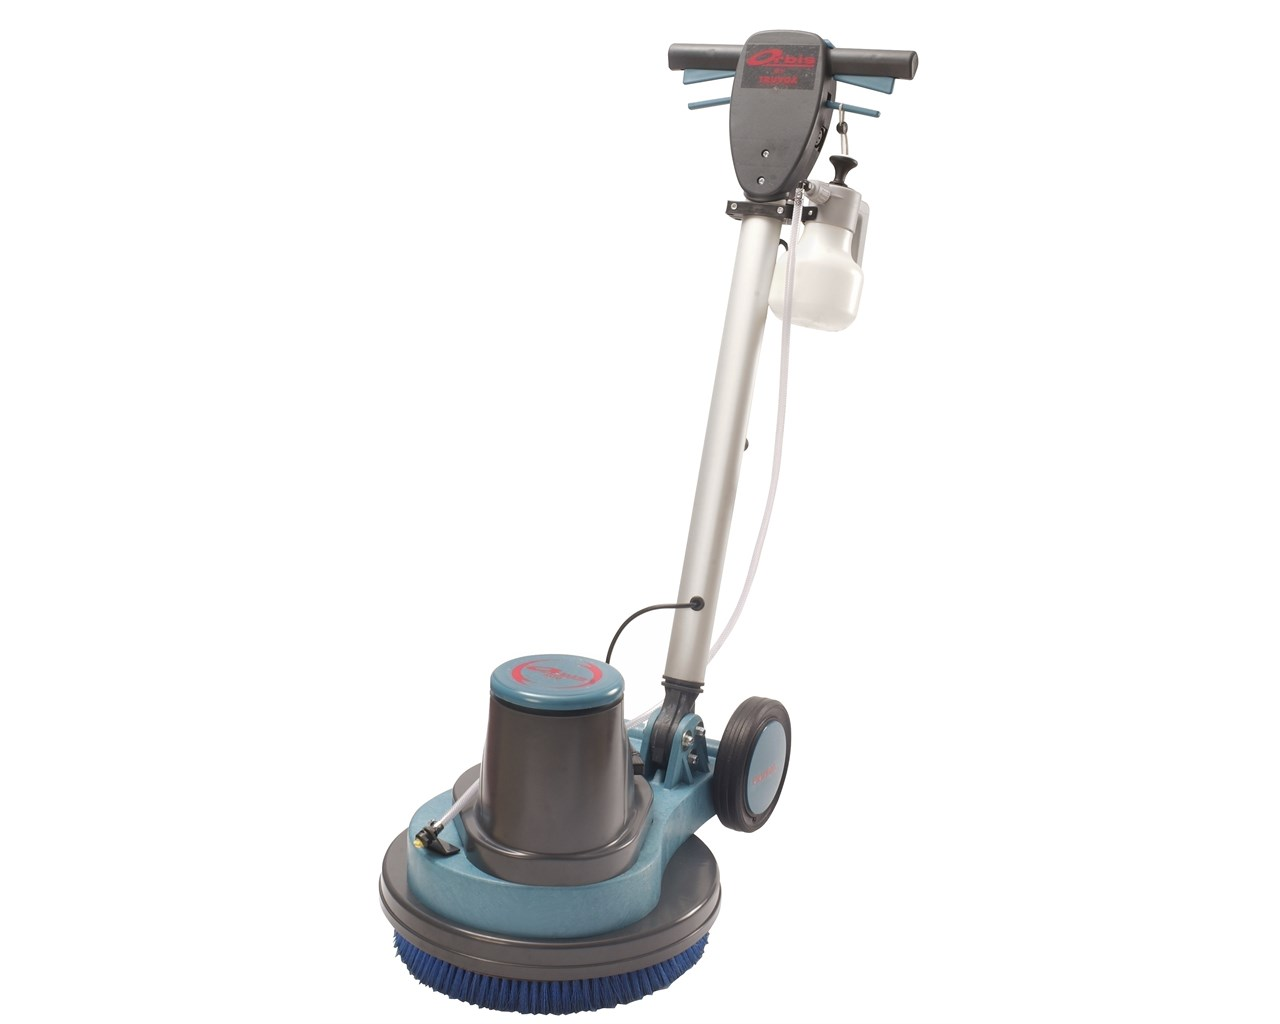 Truvox orbis 400 17 rotary floor machine complete for Floor cleaning machine